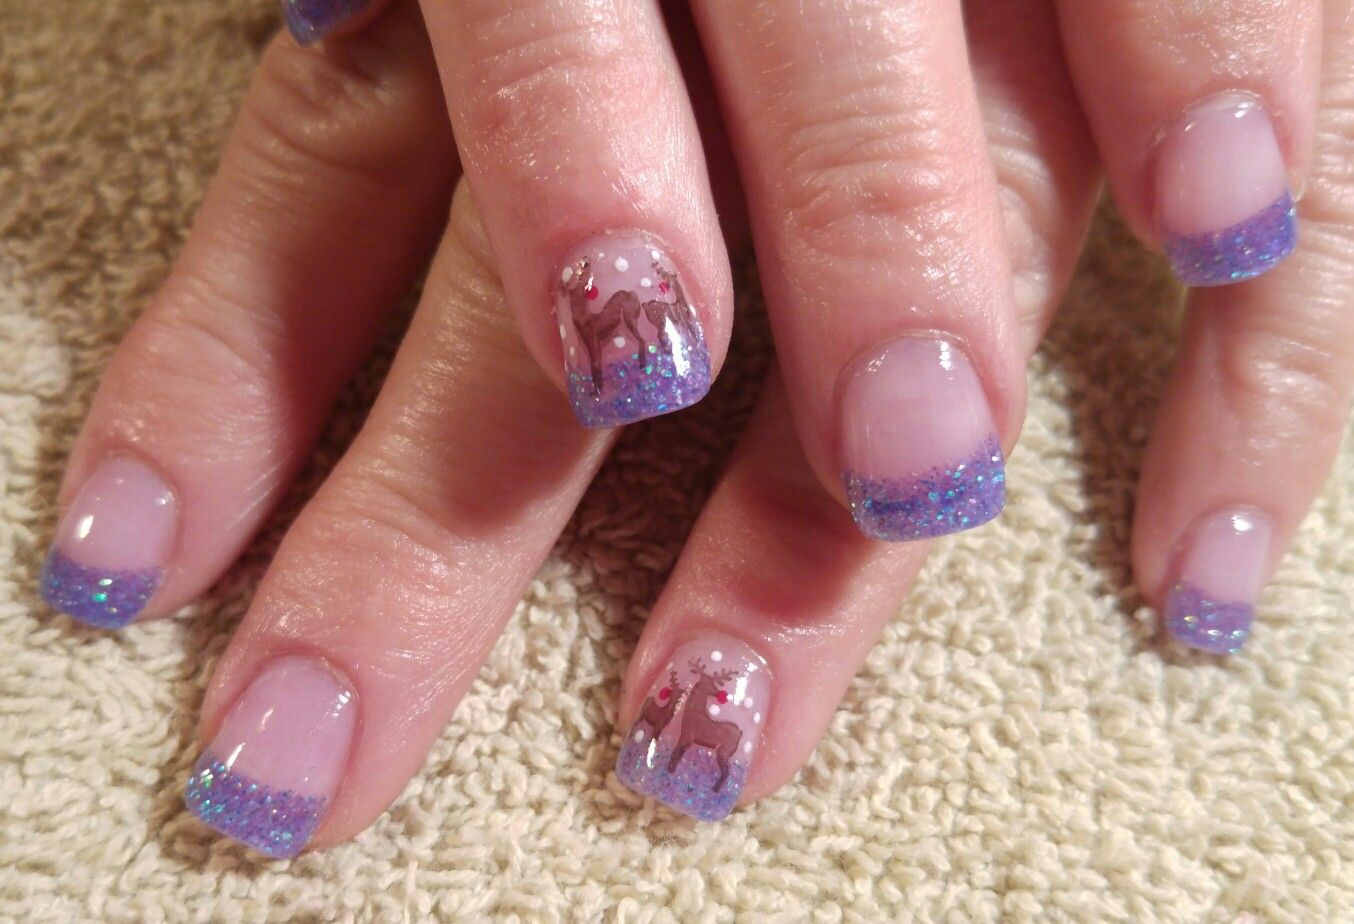 Winter Nail Design Glitter Purple French Tip Nails With Stamped